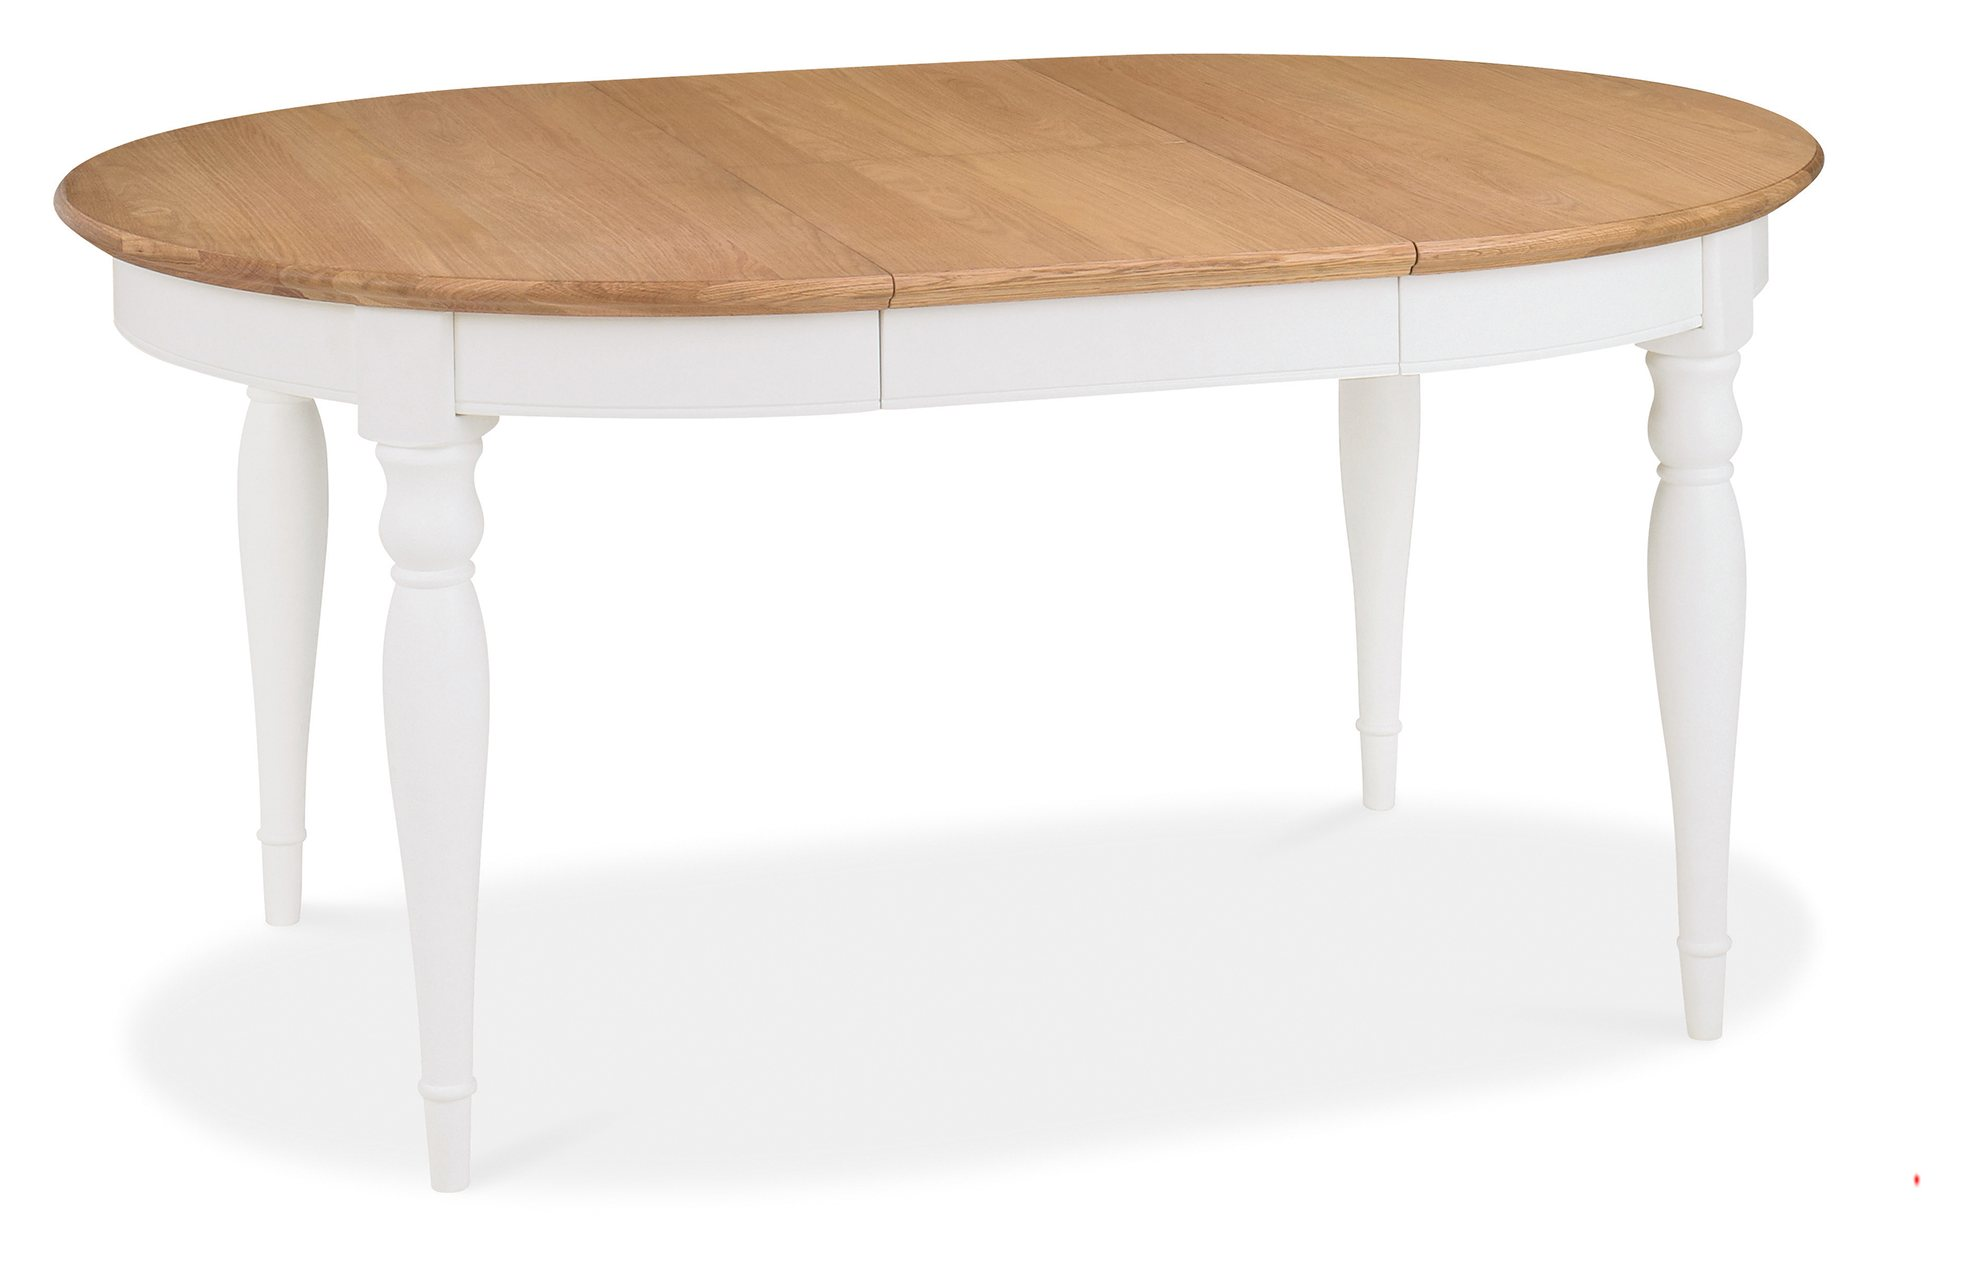 KYRA-TWO-TONE-ROUND-DINING-TABLE-OPENED-L181cm-x-D120cm-x-H77cm